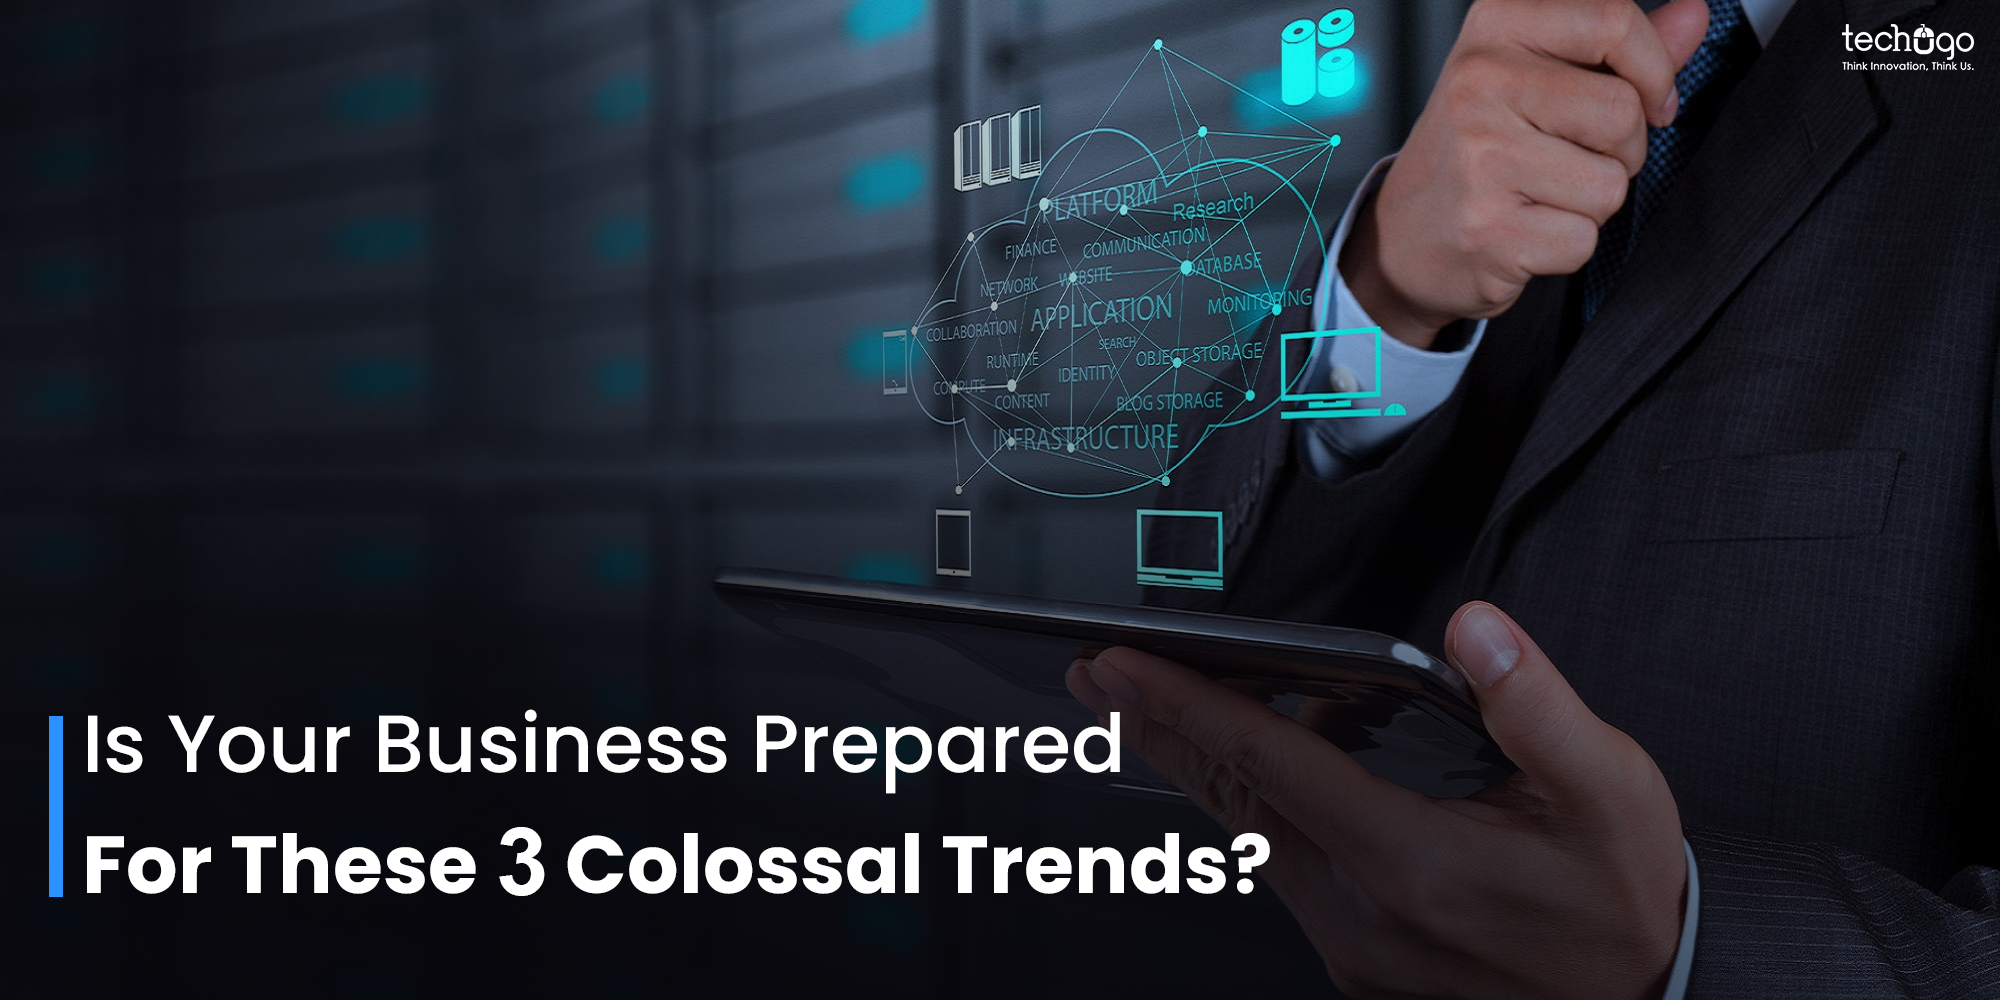 Is Your Business Prepared For These 3 Colossal Trends?